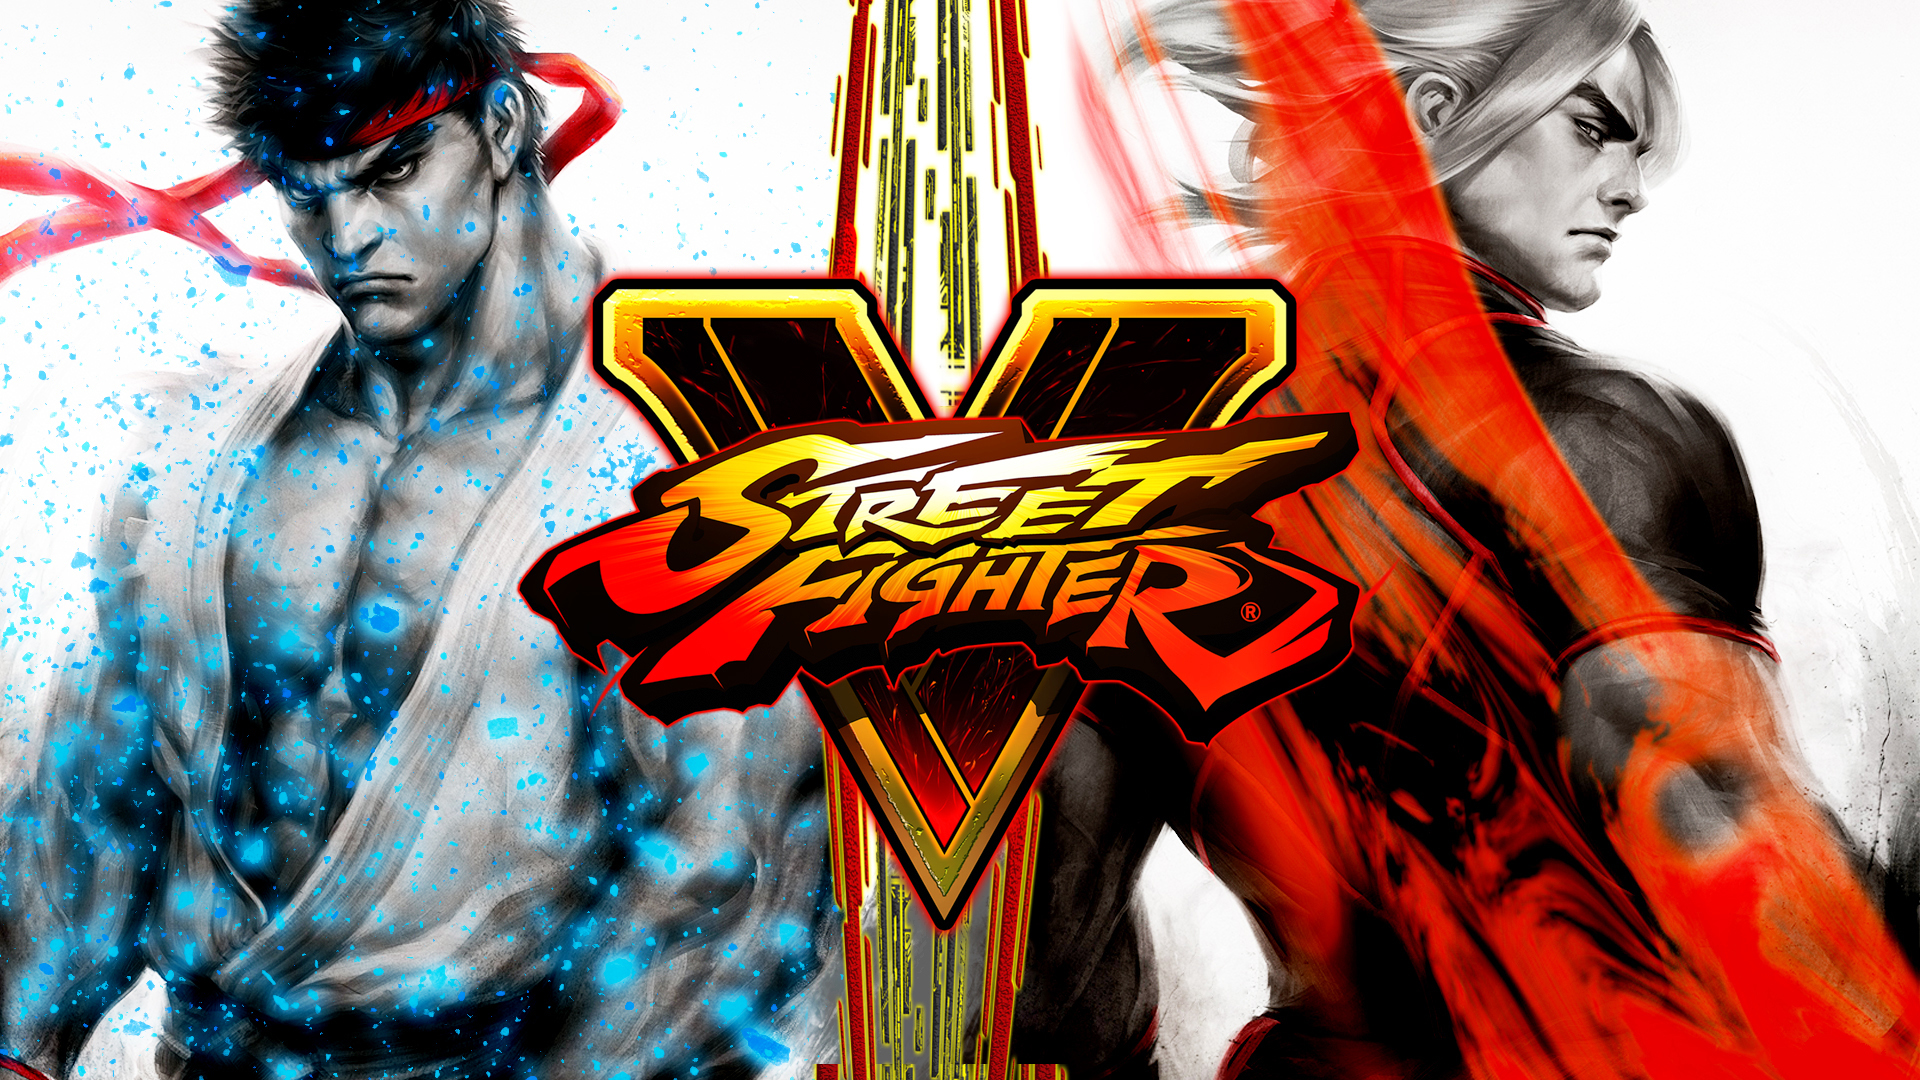 Art of street fighter download game free